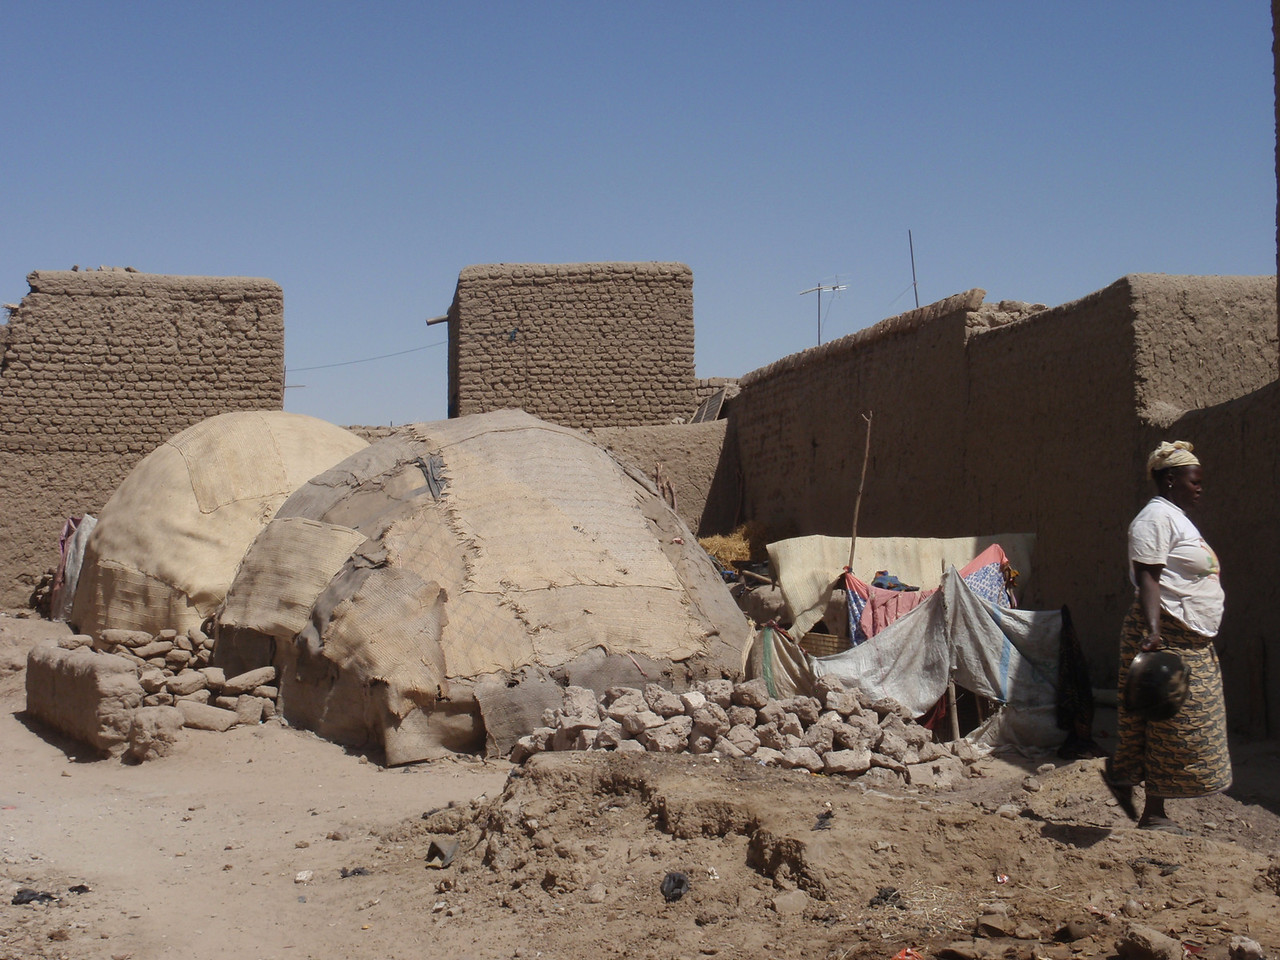 078_Timbuktu  The Habitations of the Poor People